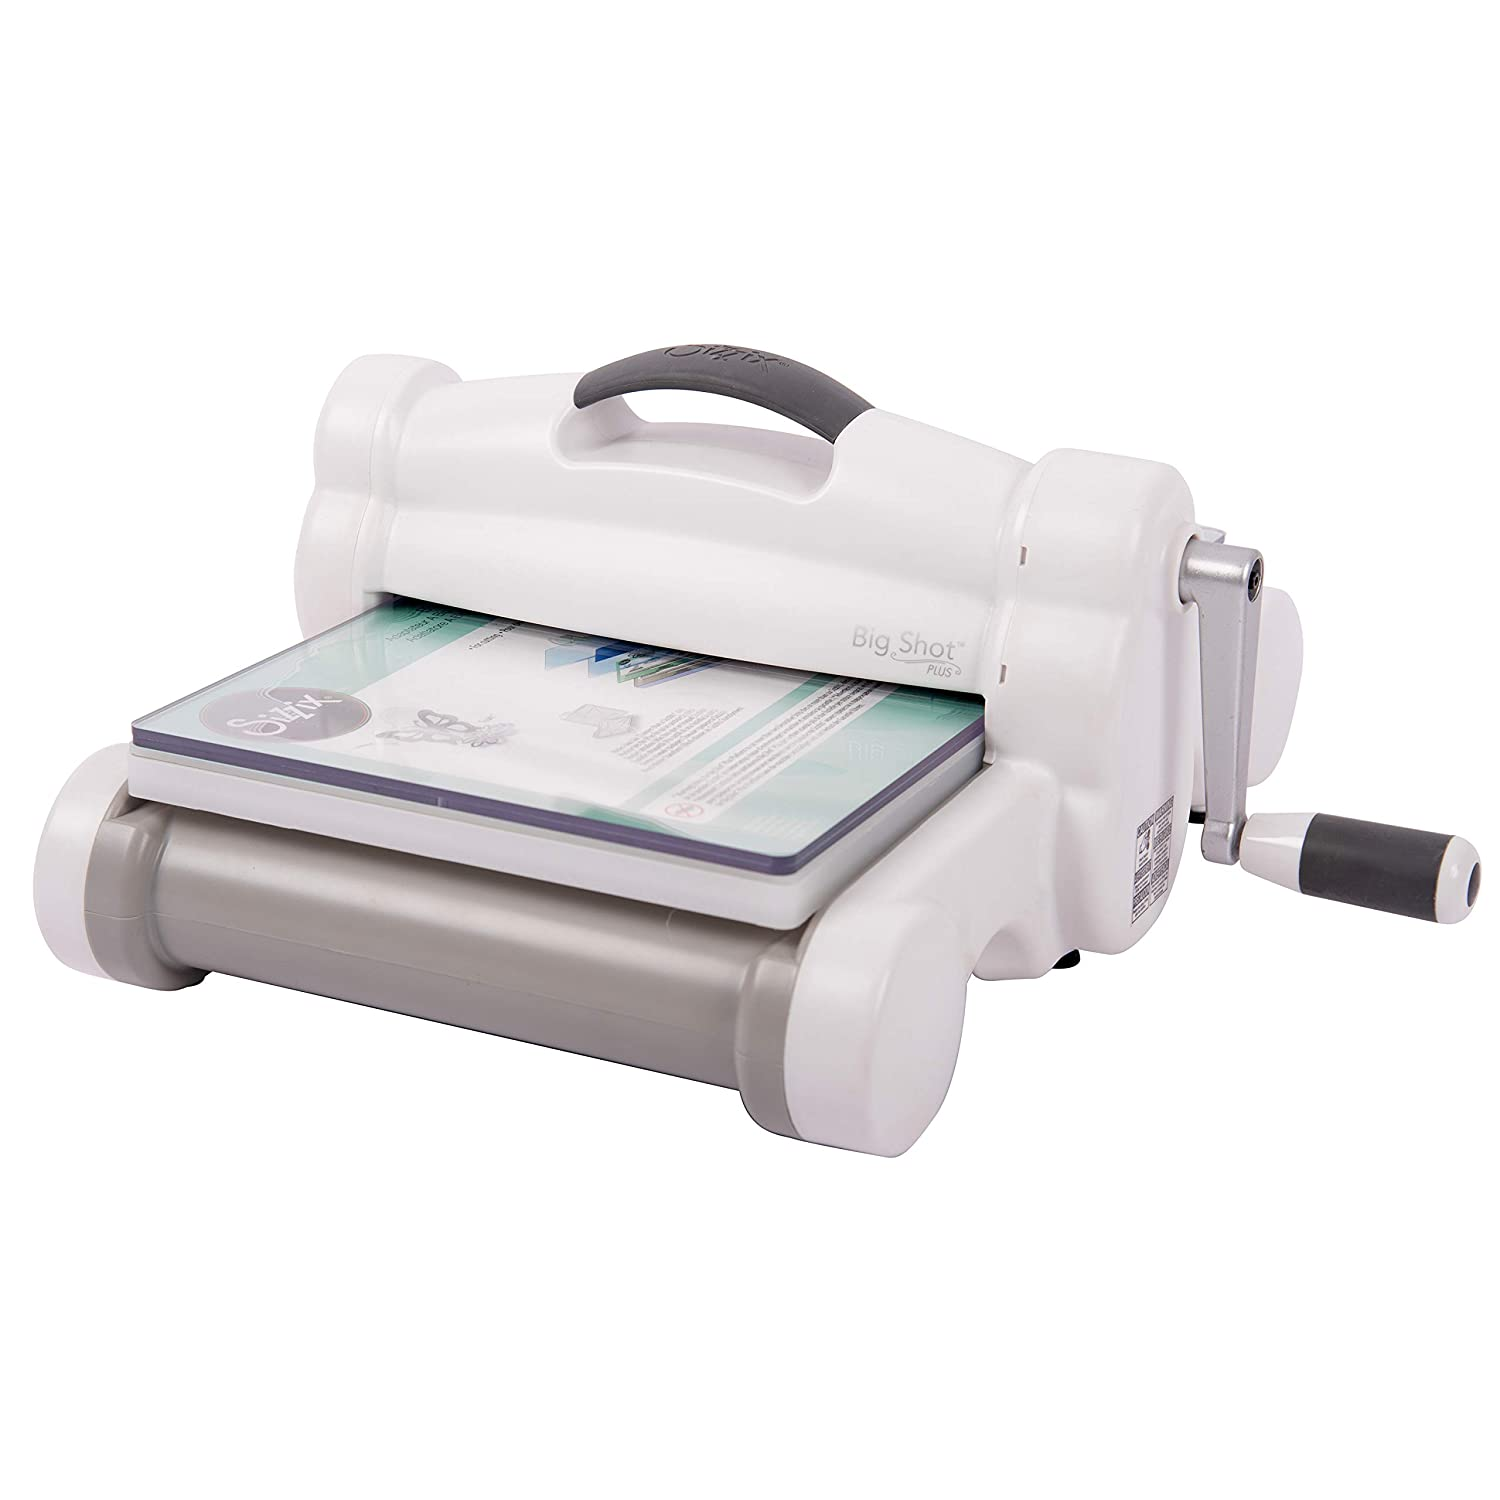 Sizzix Big Shot Plus 660340 Manual Die Cutting and Embossing Machine, 9 in (21 cm) Opening